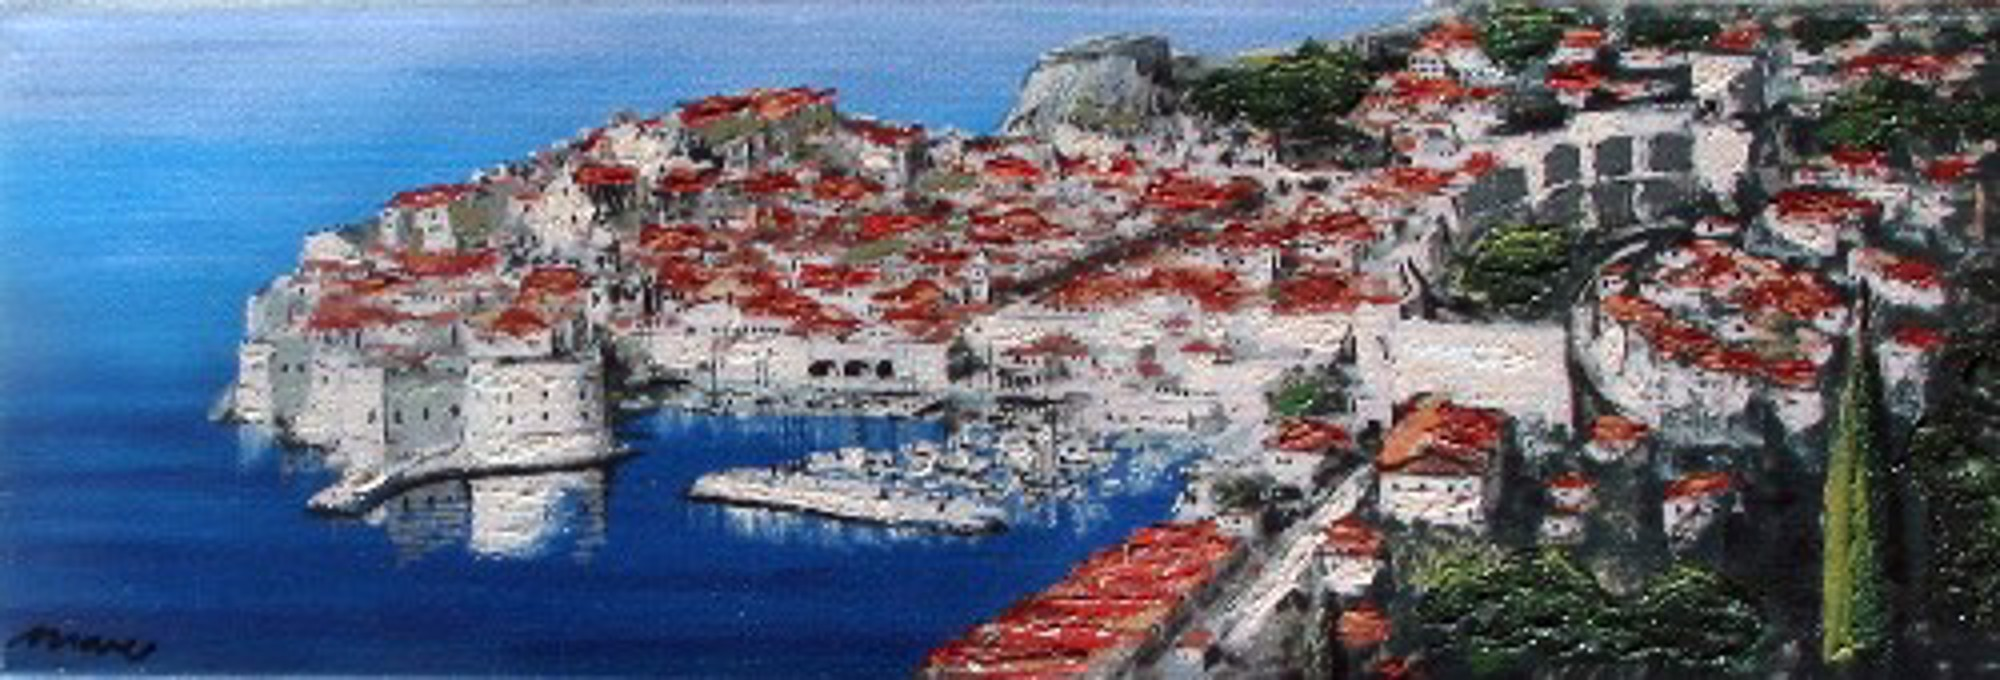 POSTCARD FROM DUBROVNIK by MARO